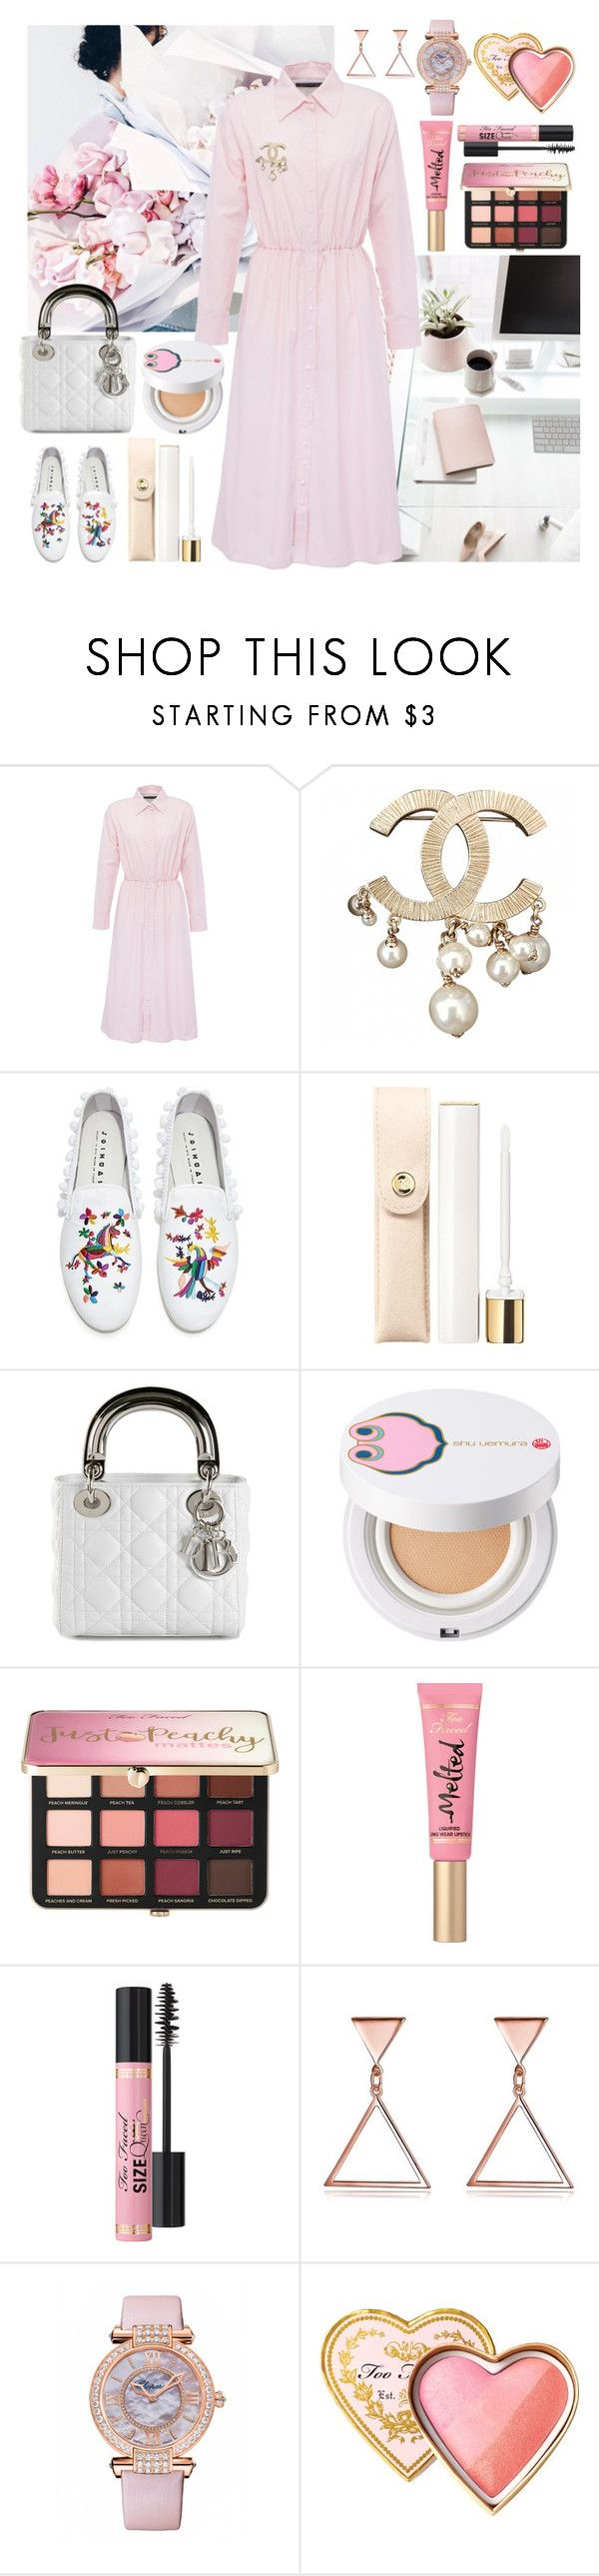 """""""Untitled #511"""" by ngkhhuynstyle ❤ liked on Polyvore featuring Anouki, Chanel, Joshua's, shu uemura, Sephora Collection, Too Faced Cosmetics and Chopard"""